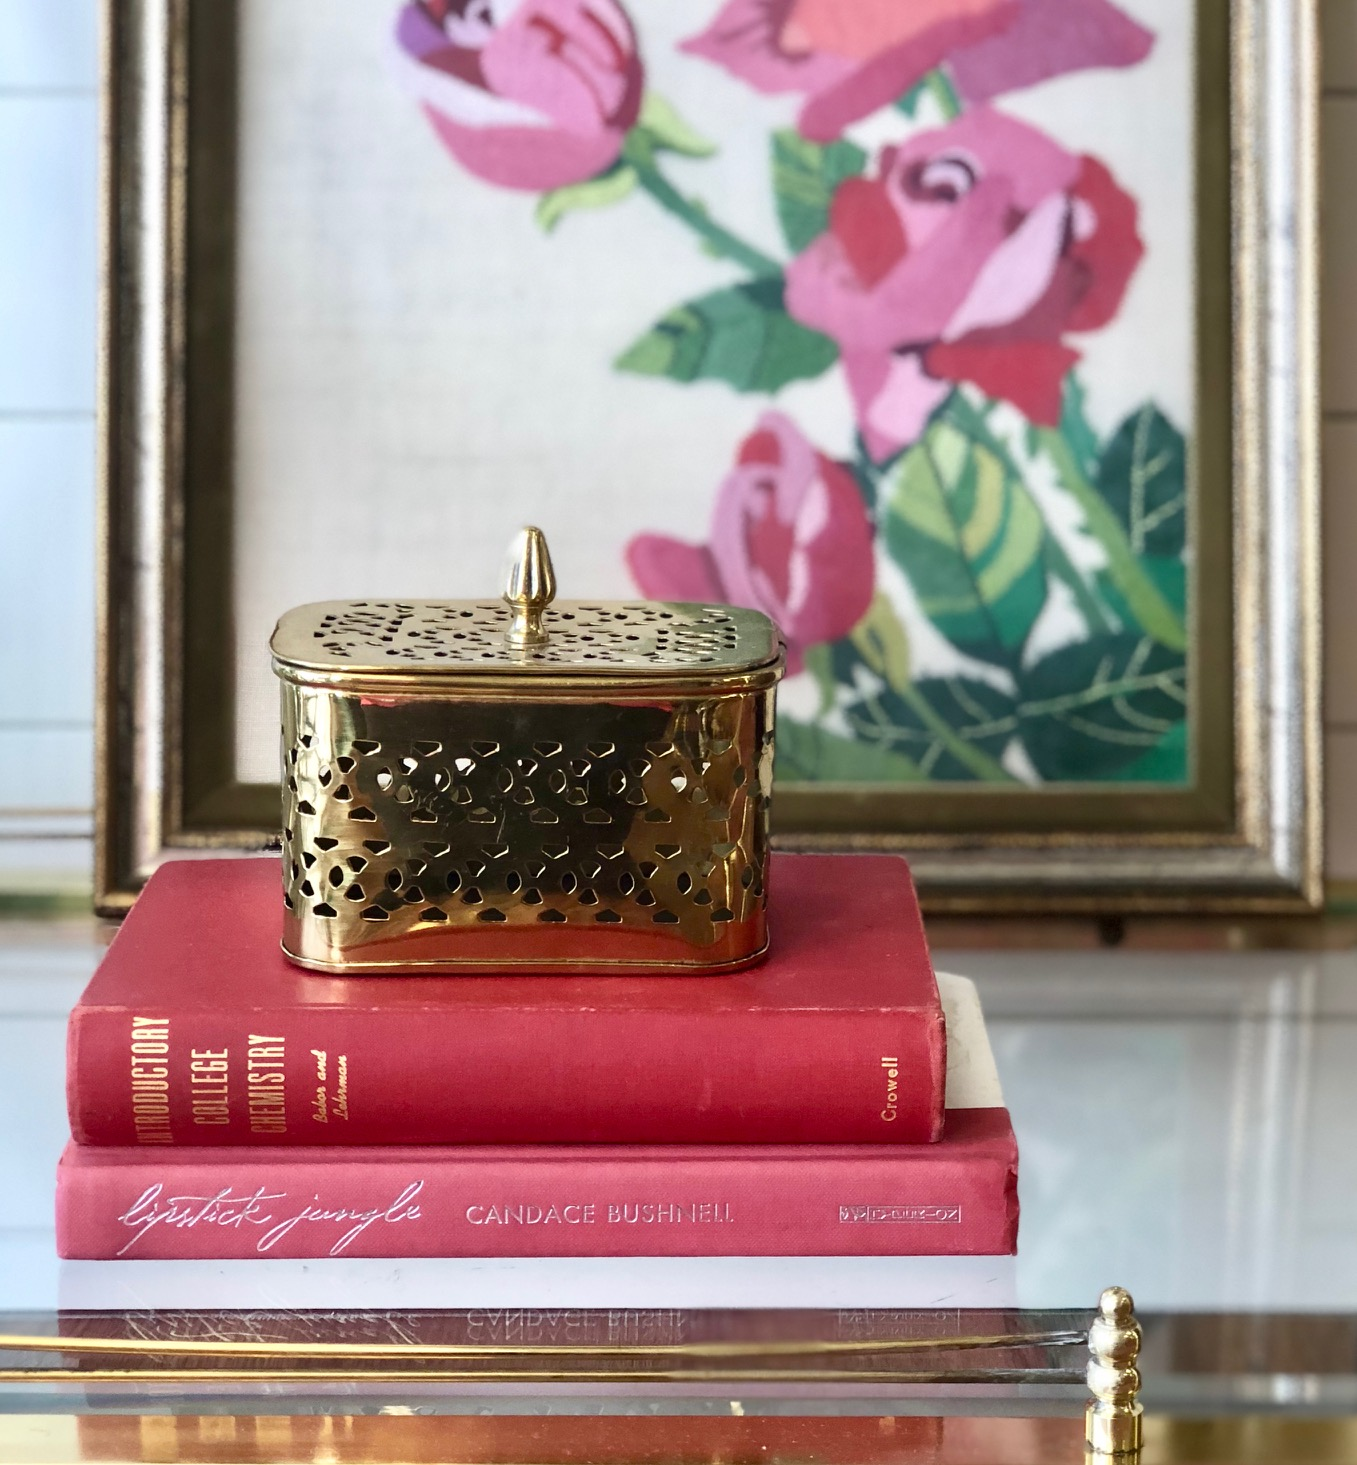 The brass cricket box makes storing matches for the candles above easy and discreet.